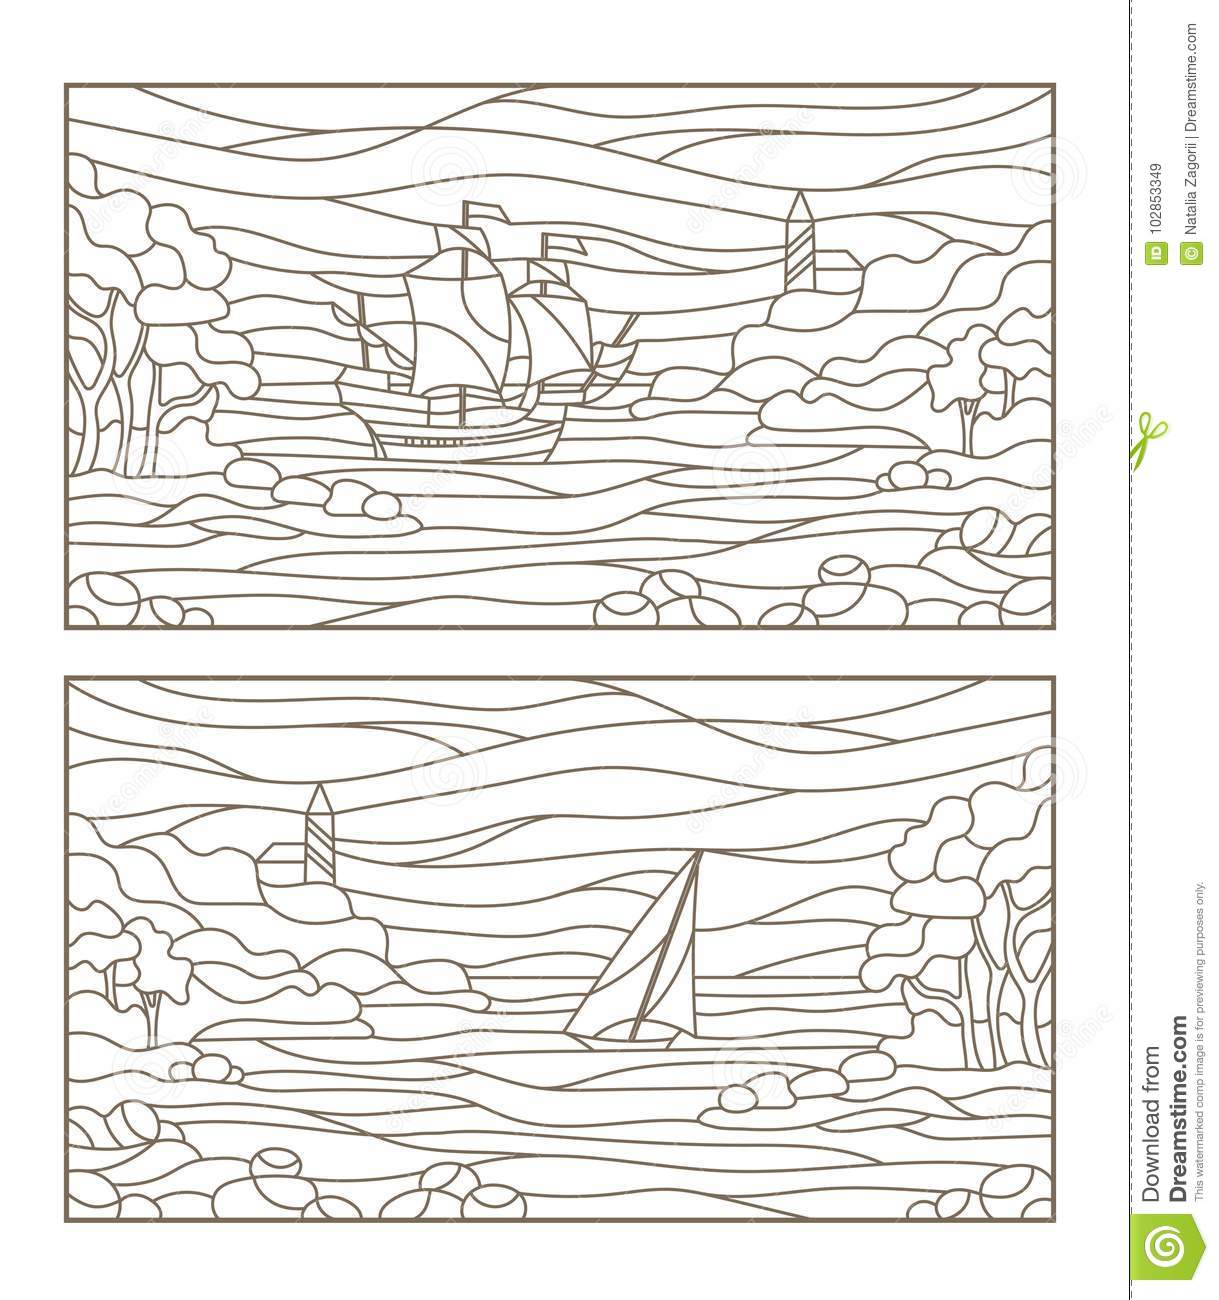 Contour set with illustrations of stained glass seascapes,sailing ship and the lighthouse in rocky Bay on the background of sea